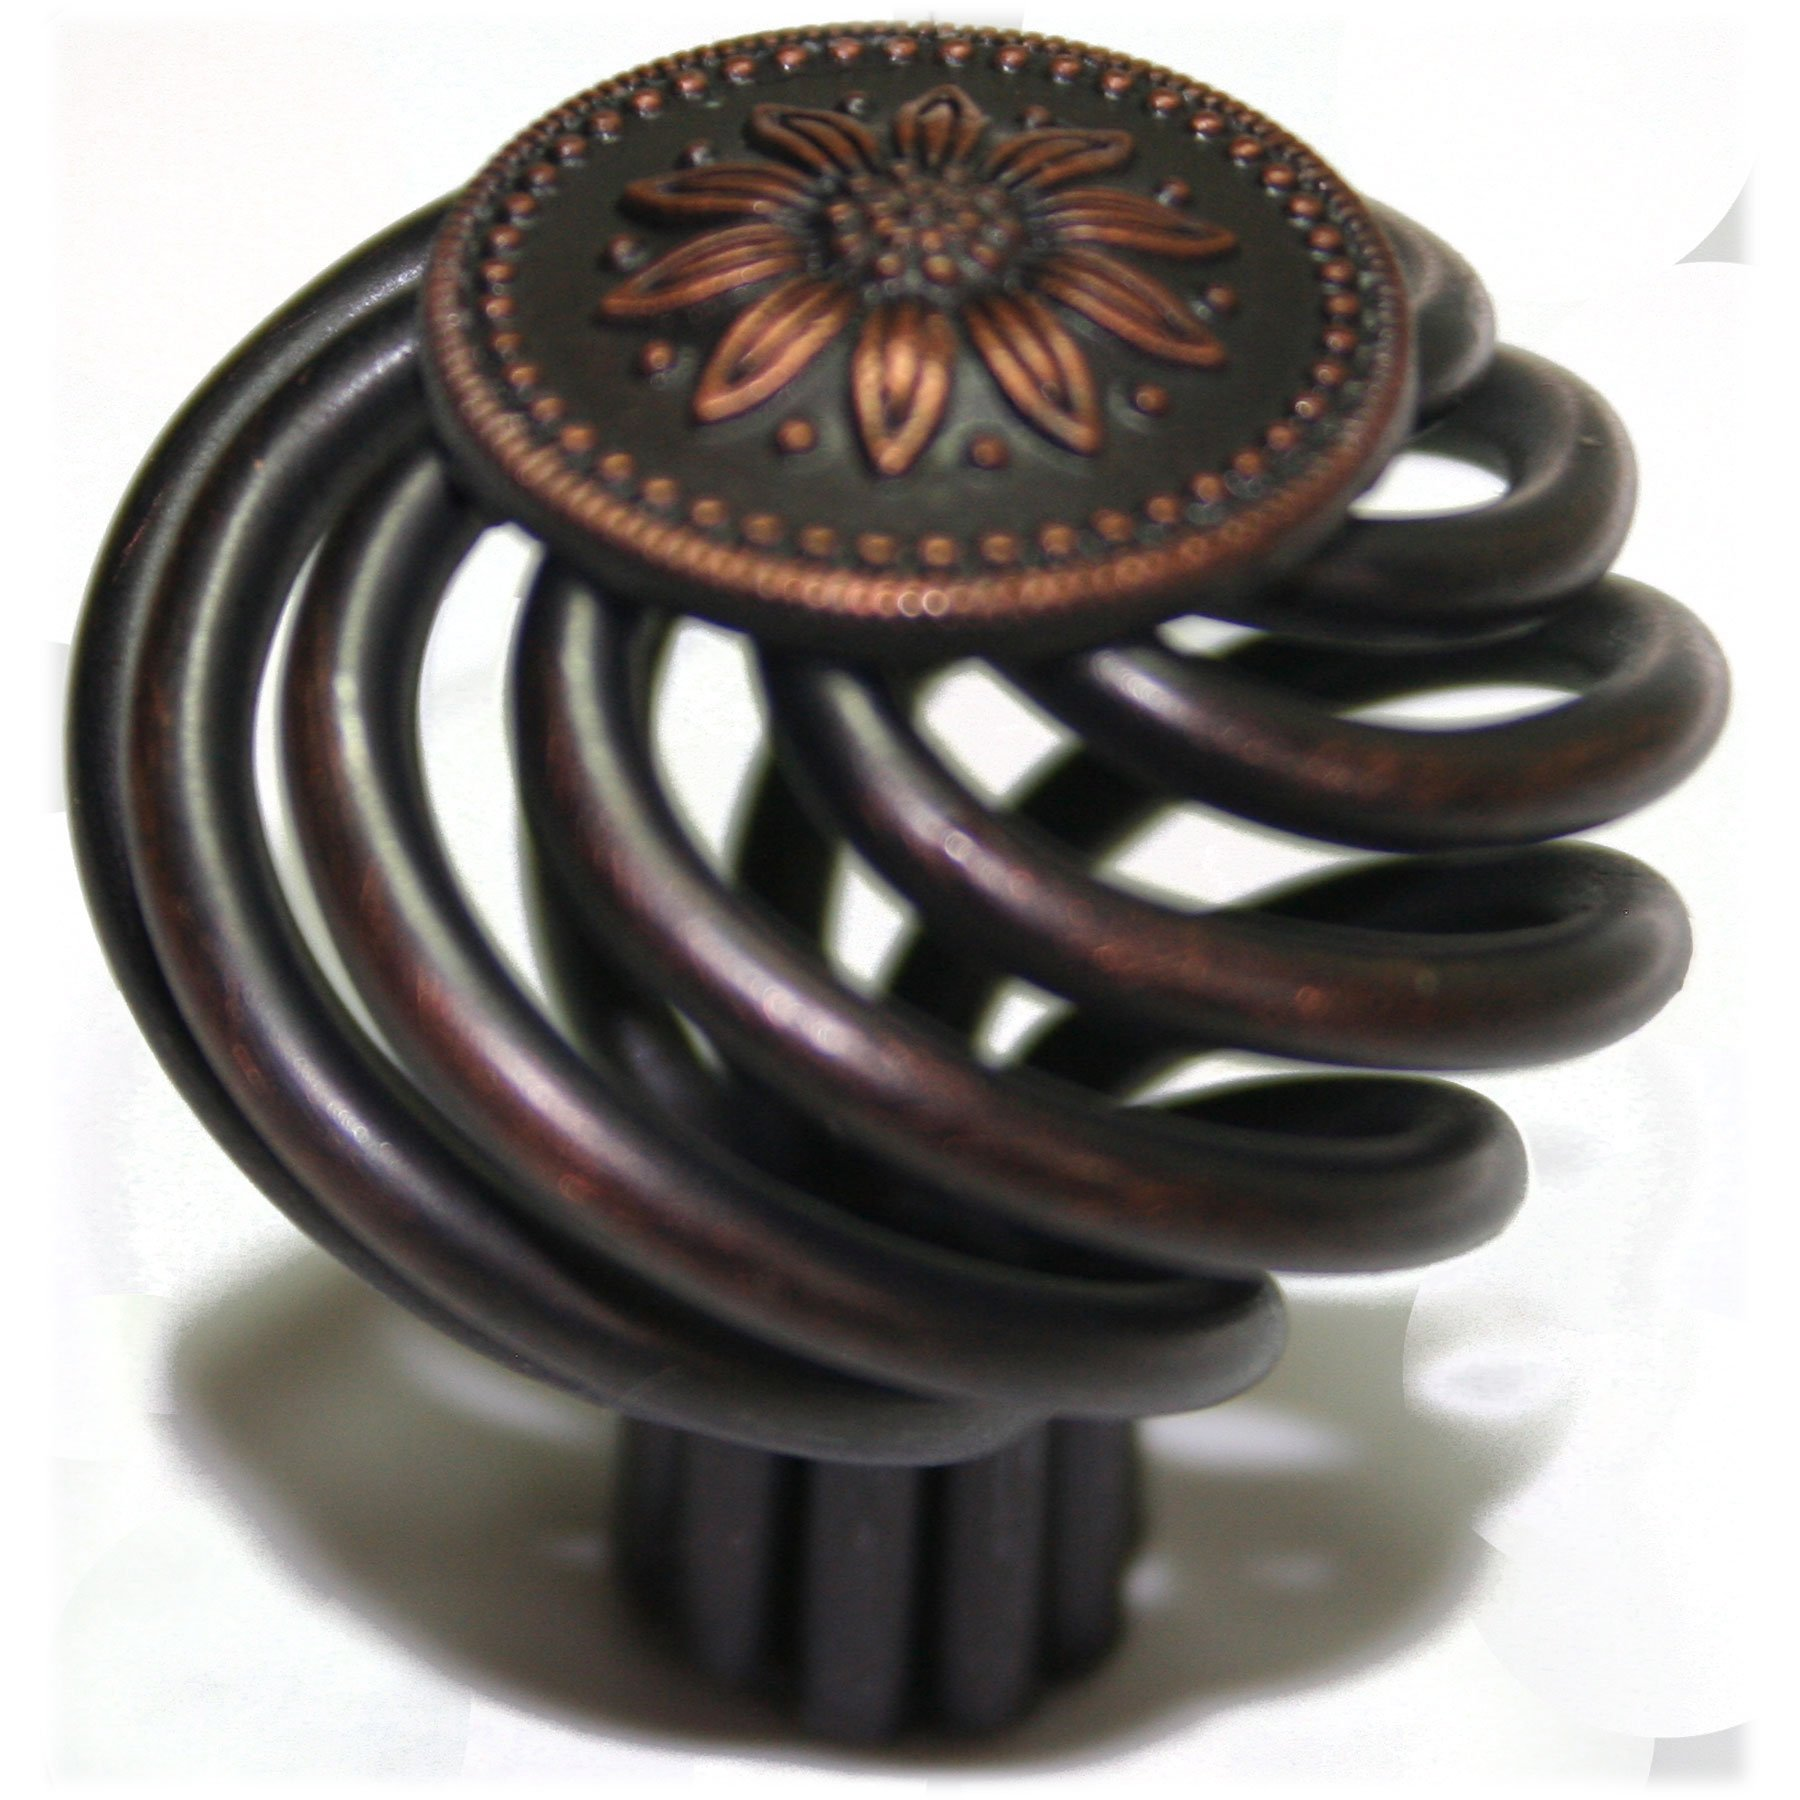 Cabinet Birdcage Knob Oil Rubbed Bronze 1-3/8'' Diameter 1201ORB By Olympia Hardware